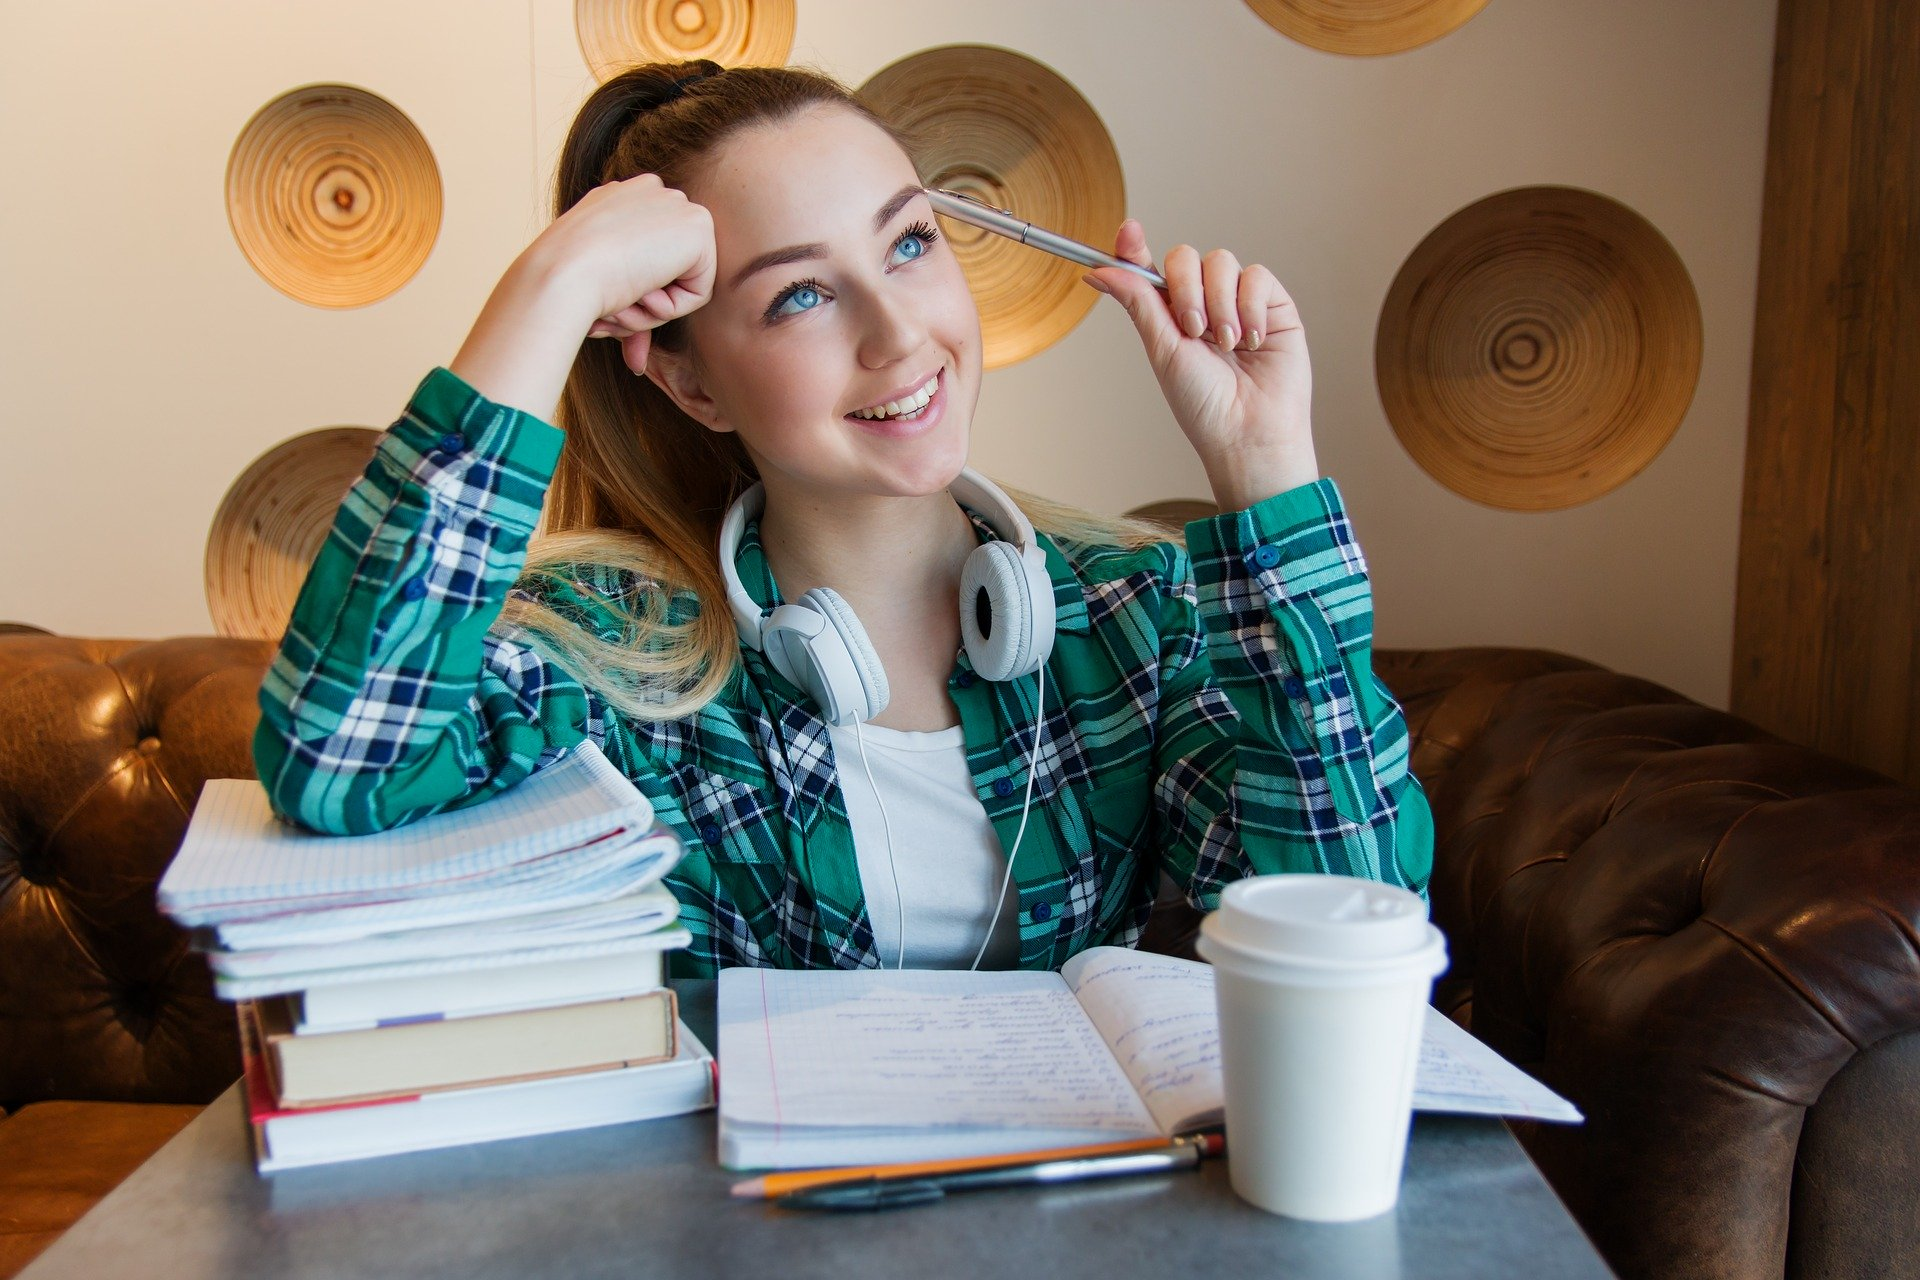 How to make studying easy